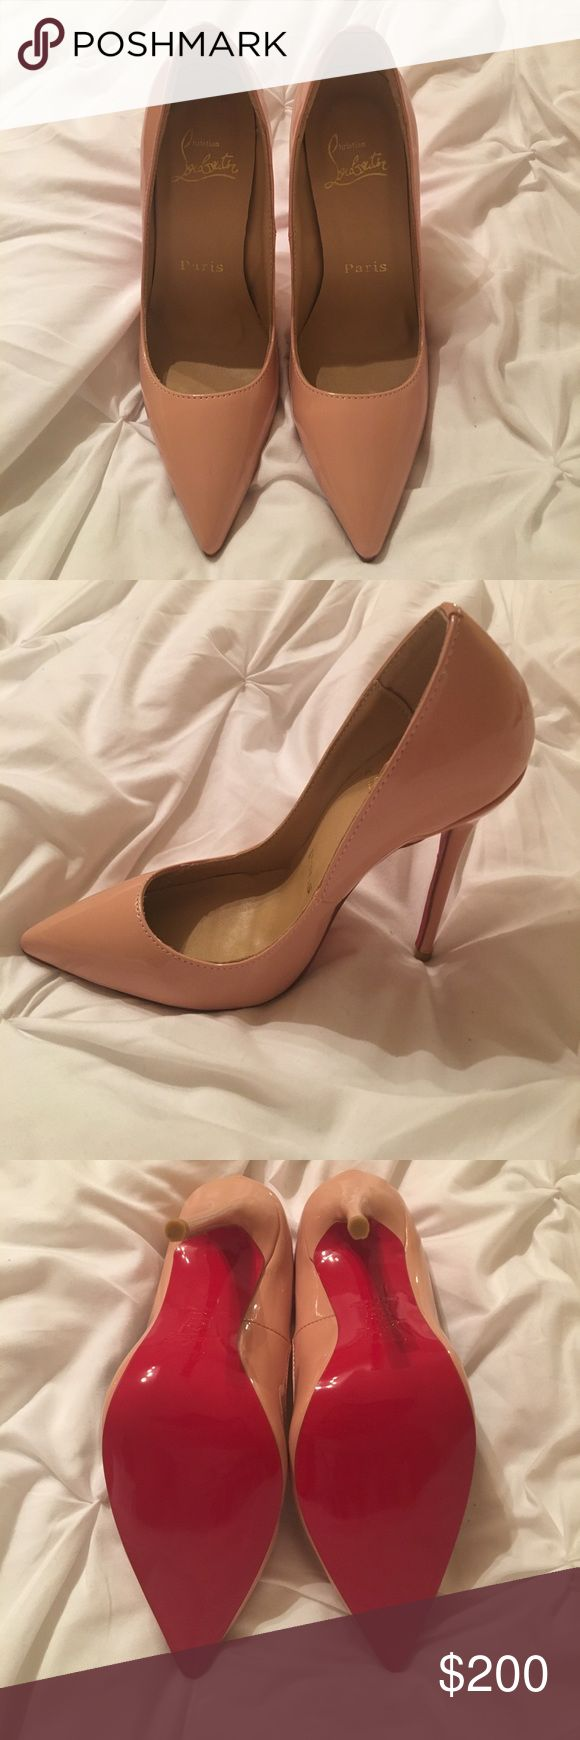 Brand new heels with red bottoms Nude heels with red bottoms (i'm actually a size 6-6.5 but these fit perfectly) Shoes Heels